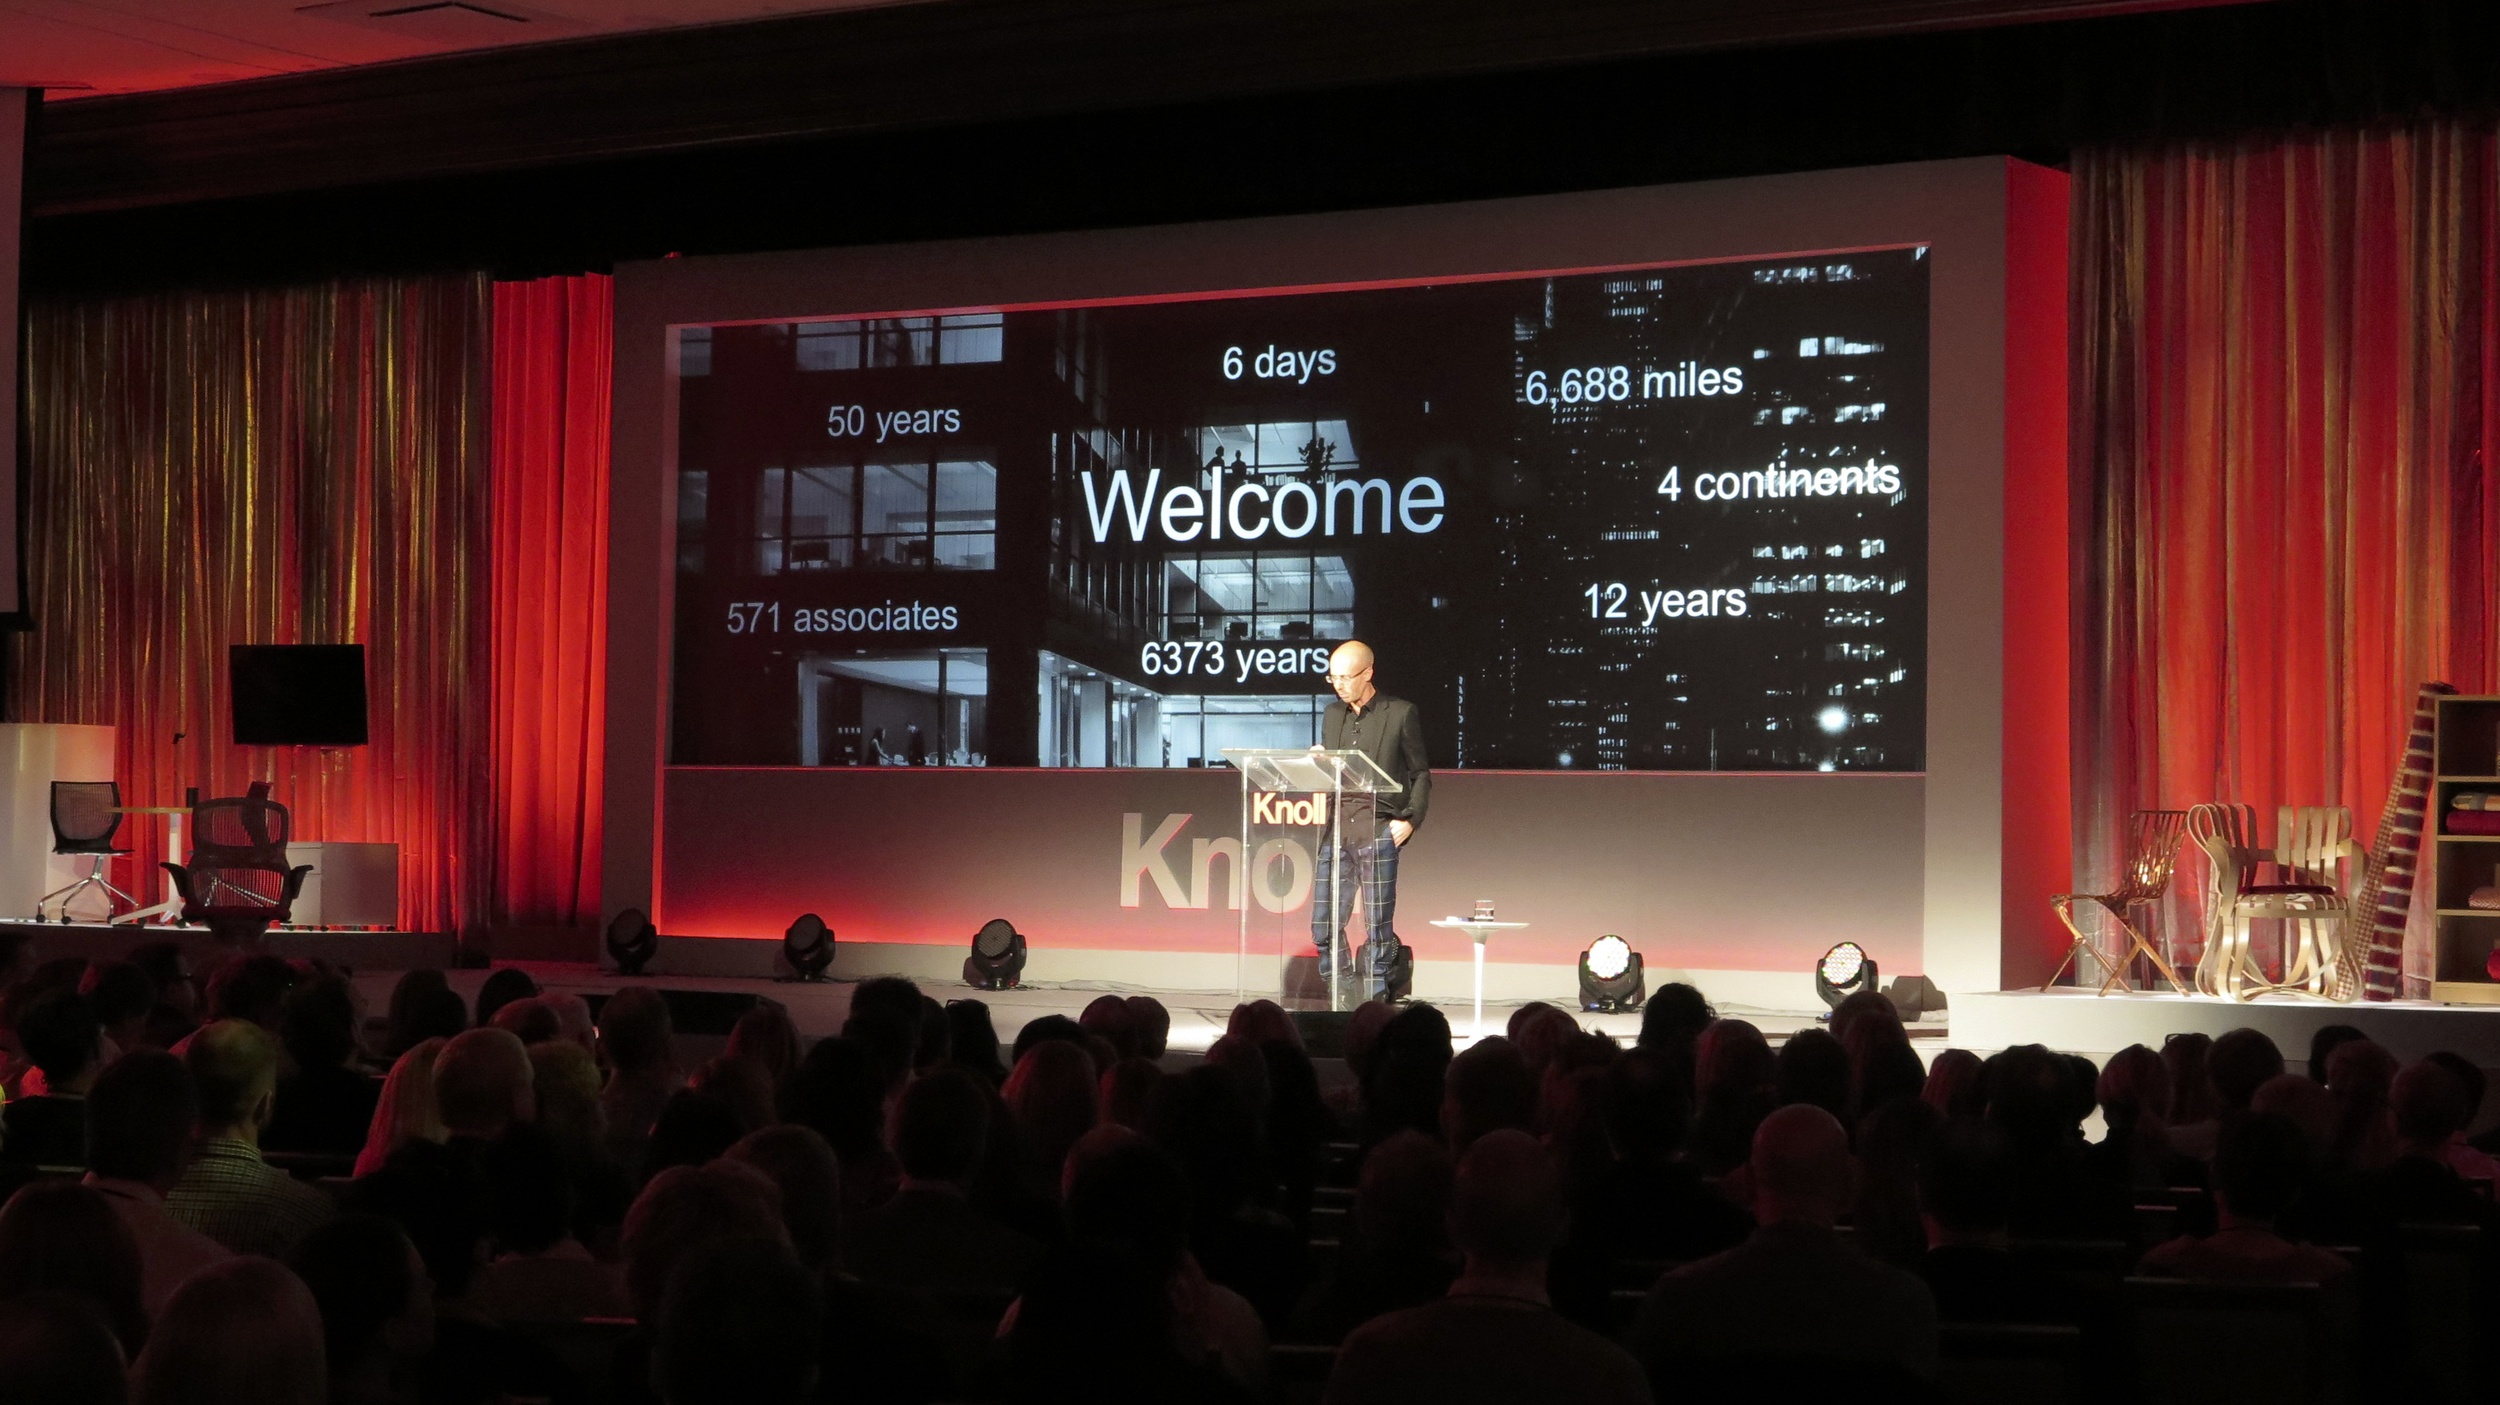 Knoll Corporate Meeting